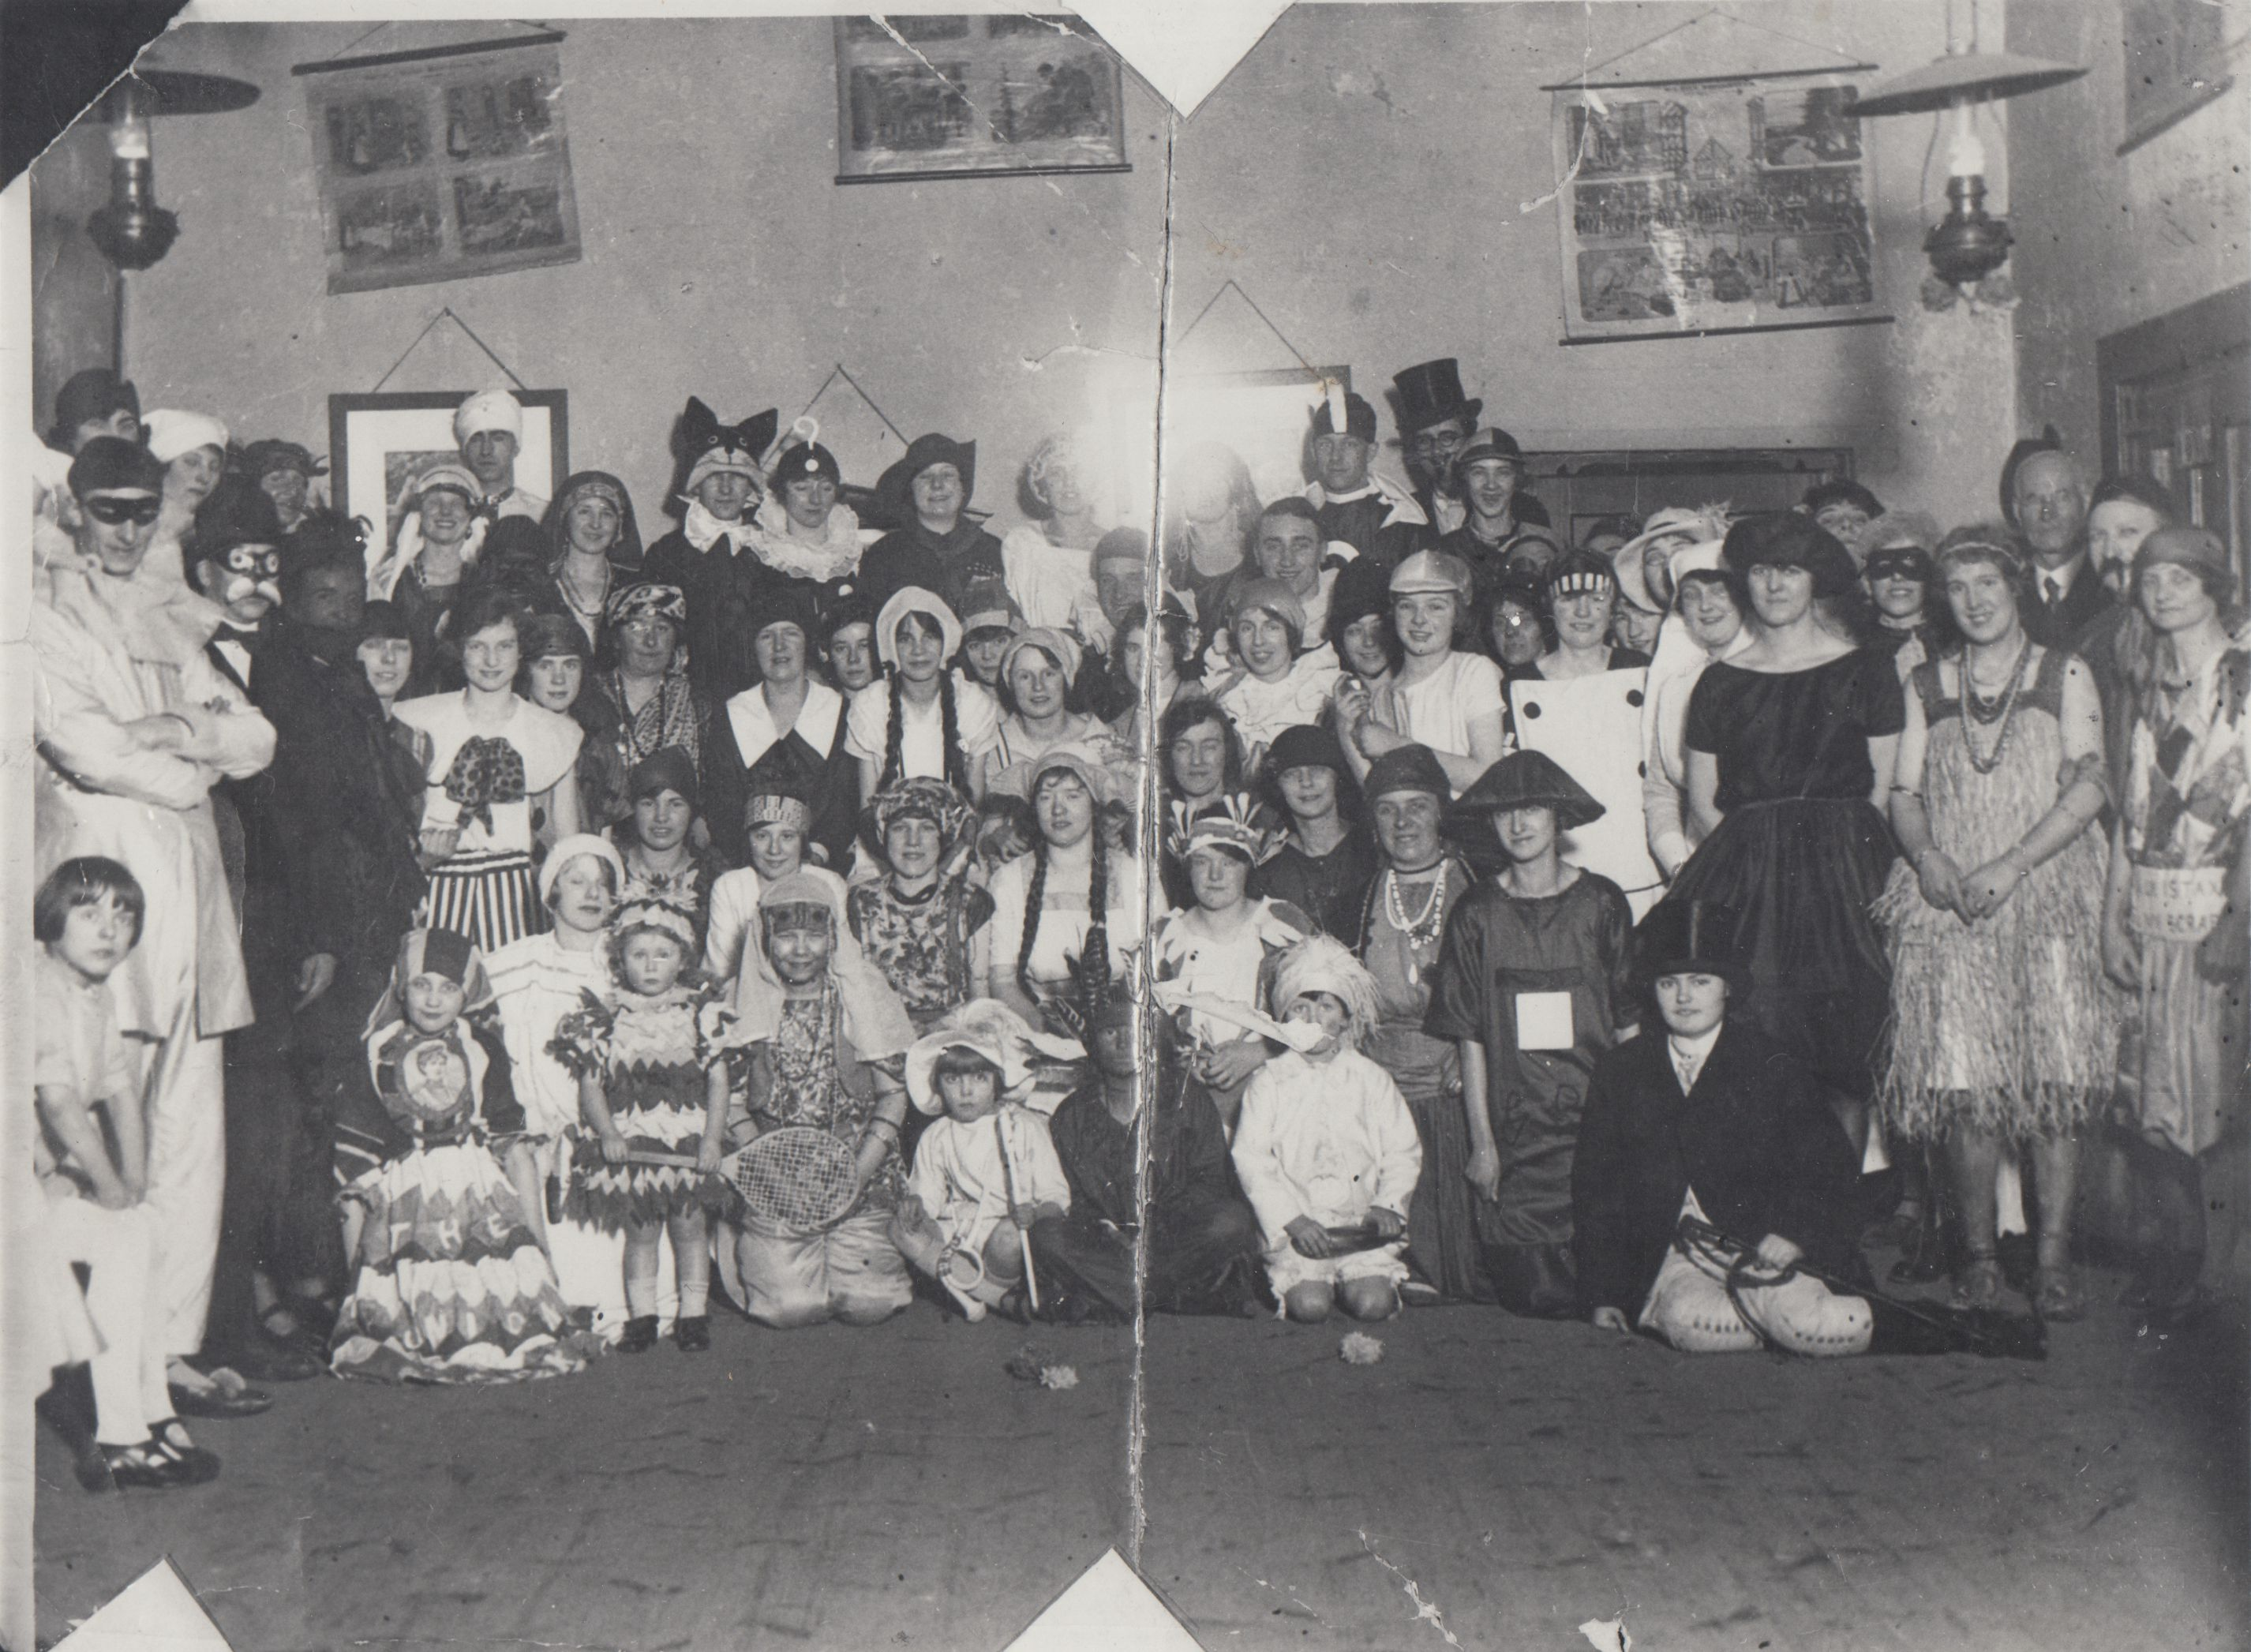 fancy_dress_school_1920s_0001.jpg